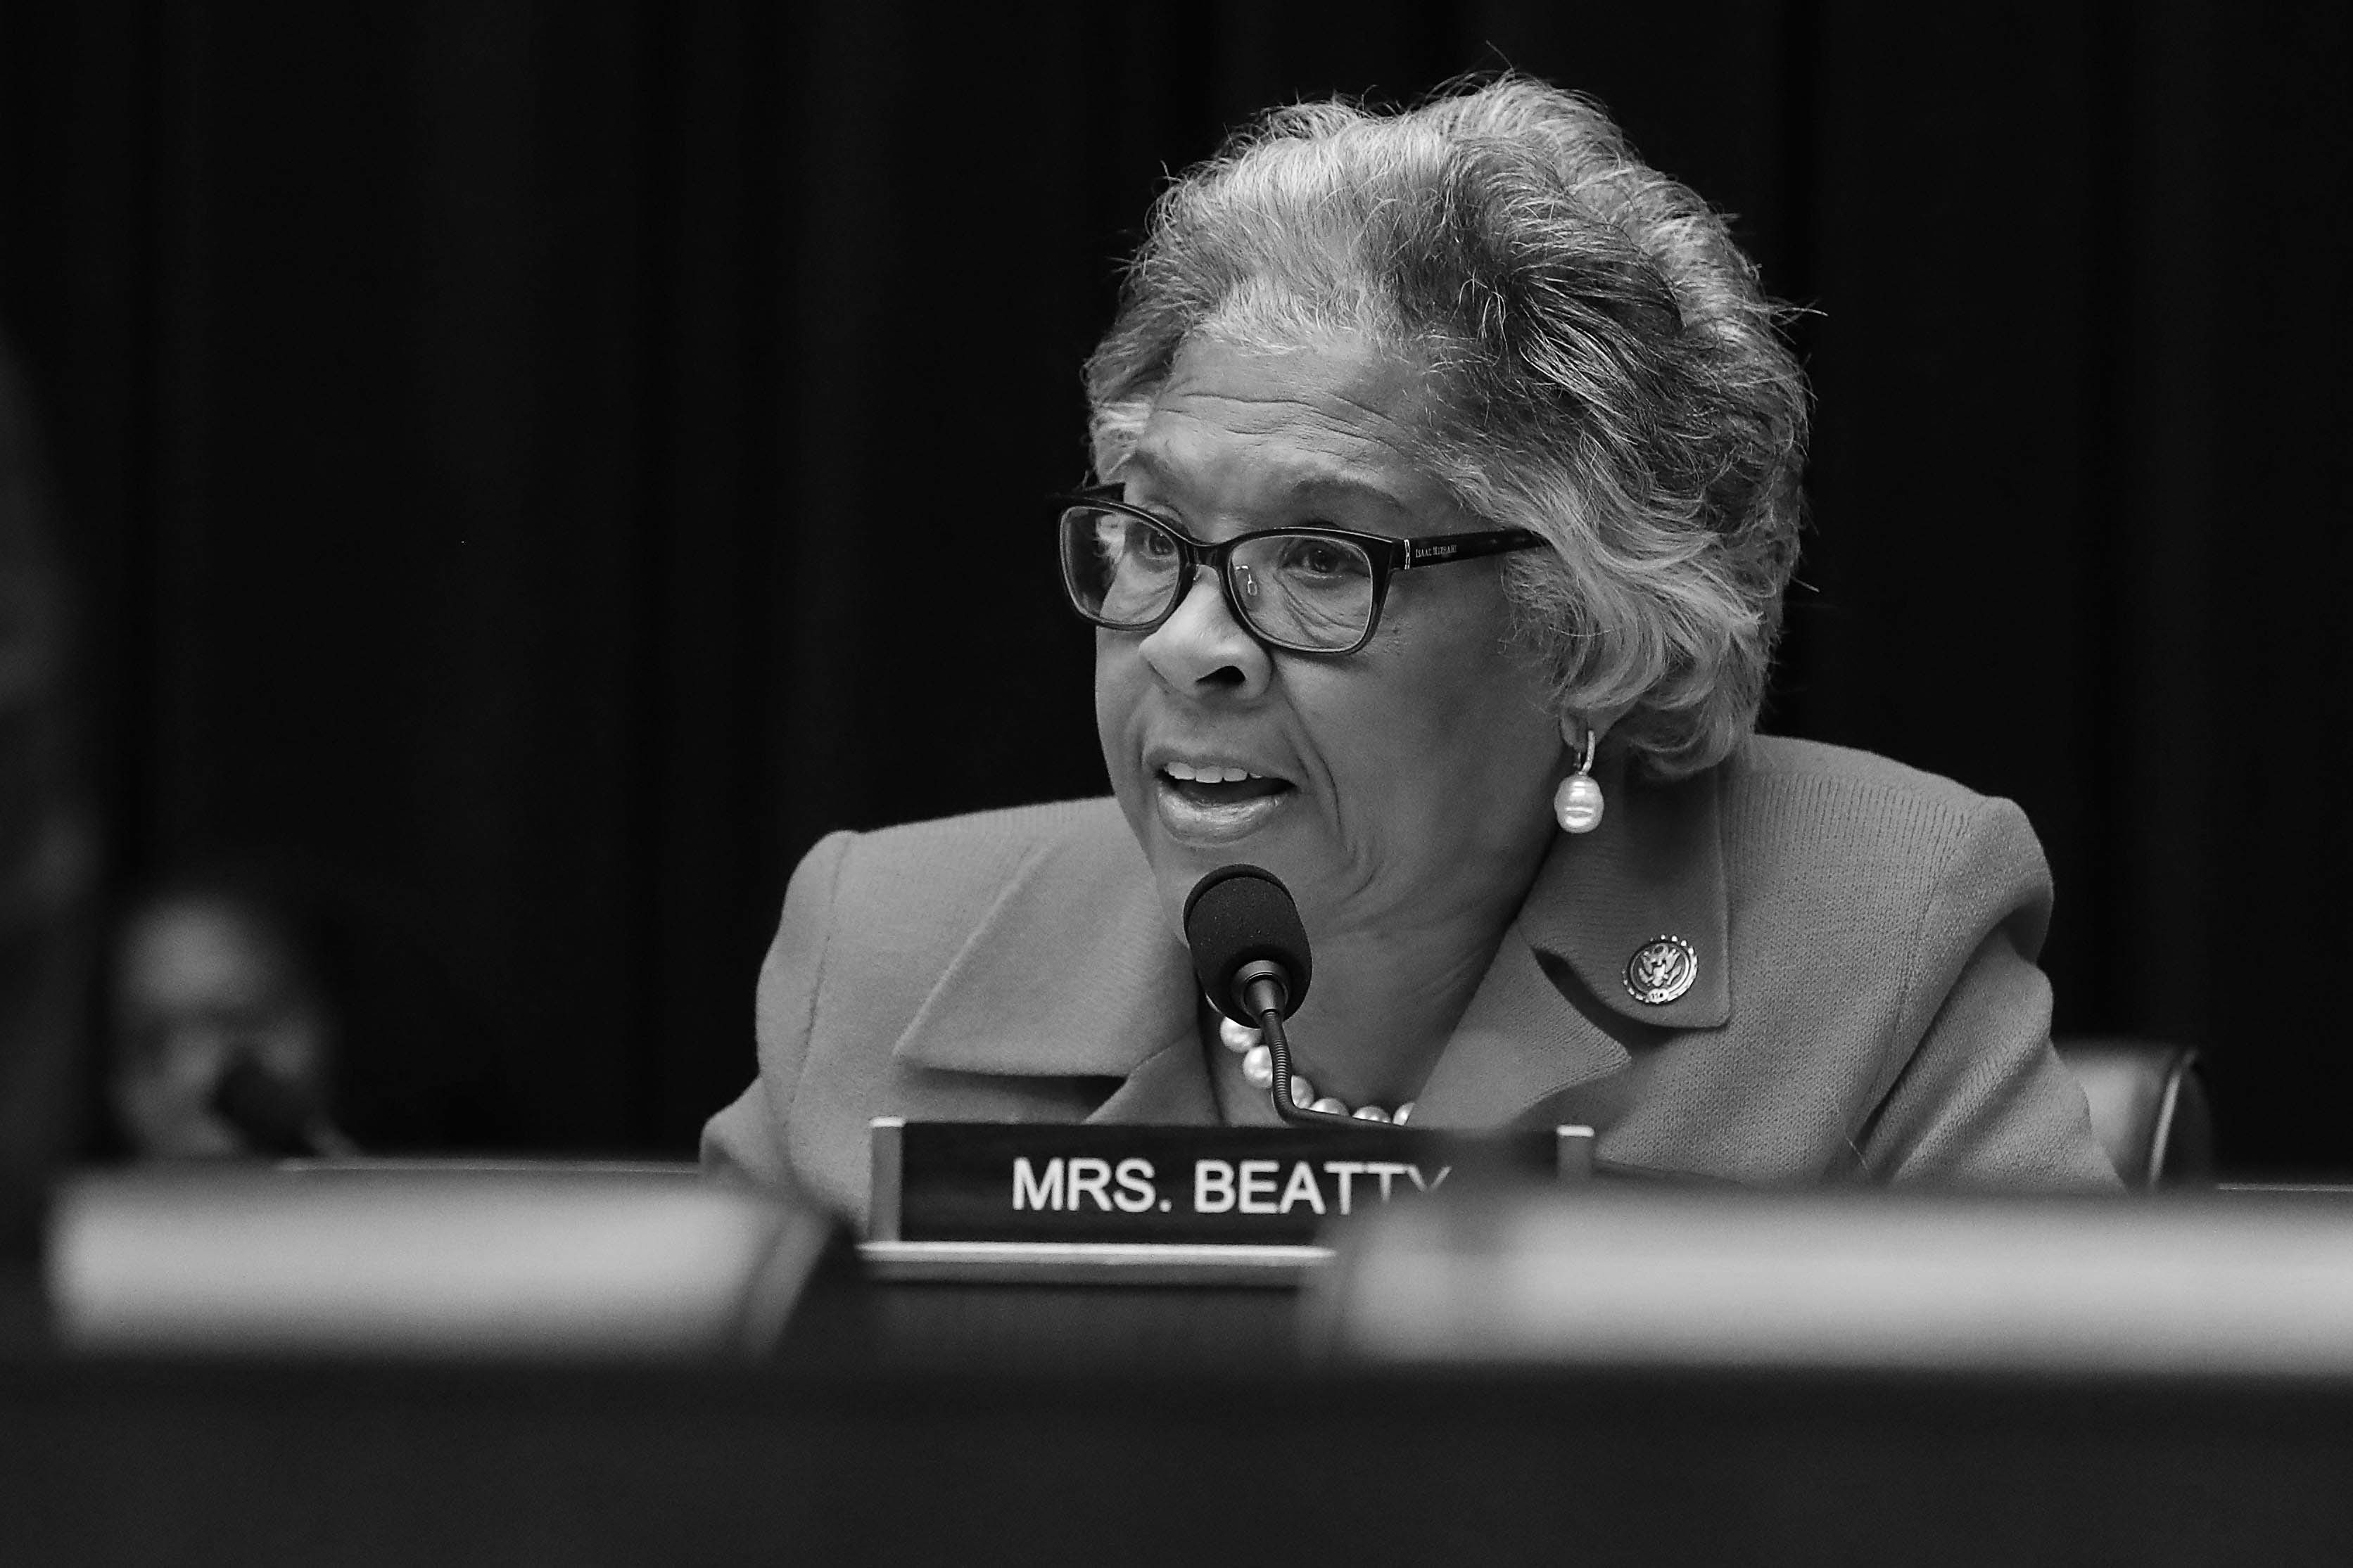 House Financial Services Committee member Rep. Joyce Beatty (D-OH) questions Facebook co-founder and CEO Mark Zuckerberg during a hearing in the Rayburn House Office Building on Capitol Hill.